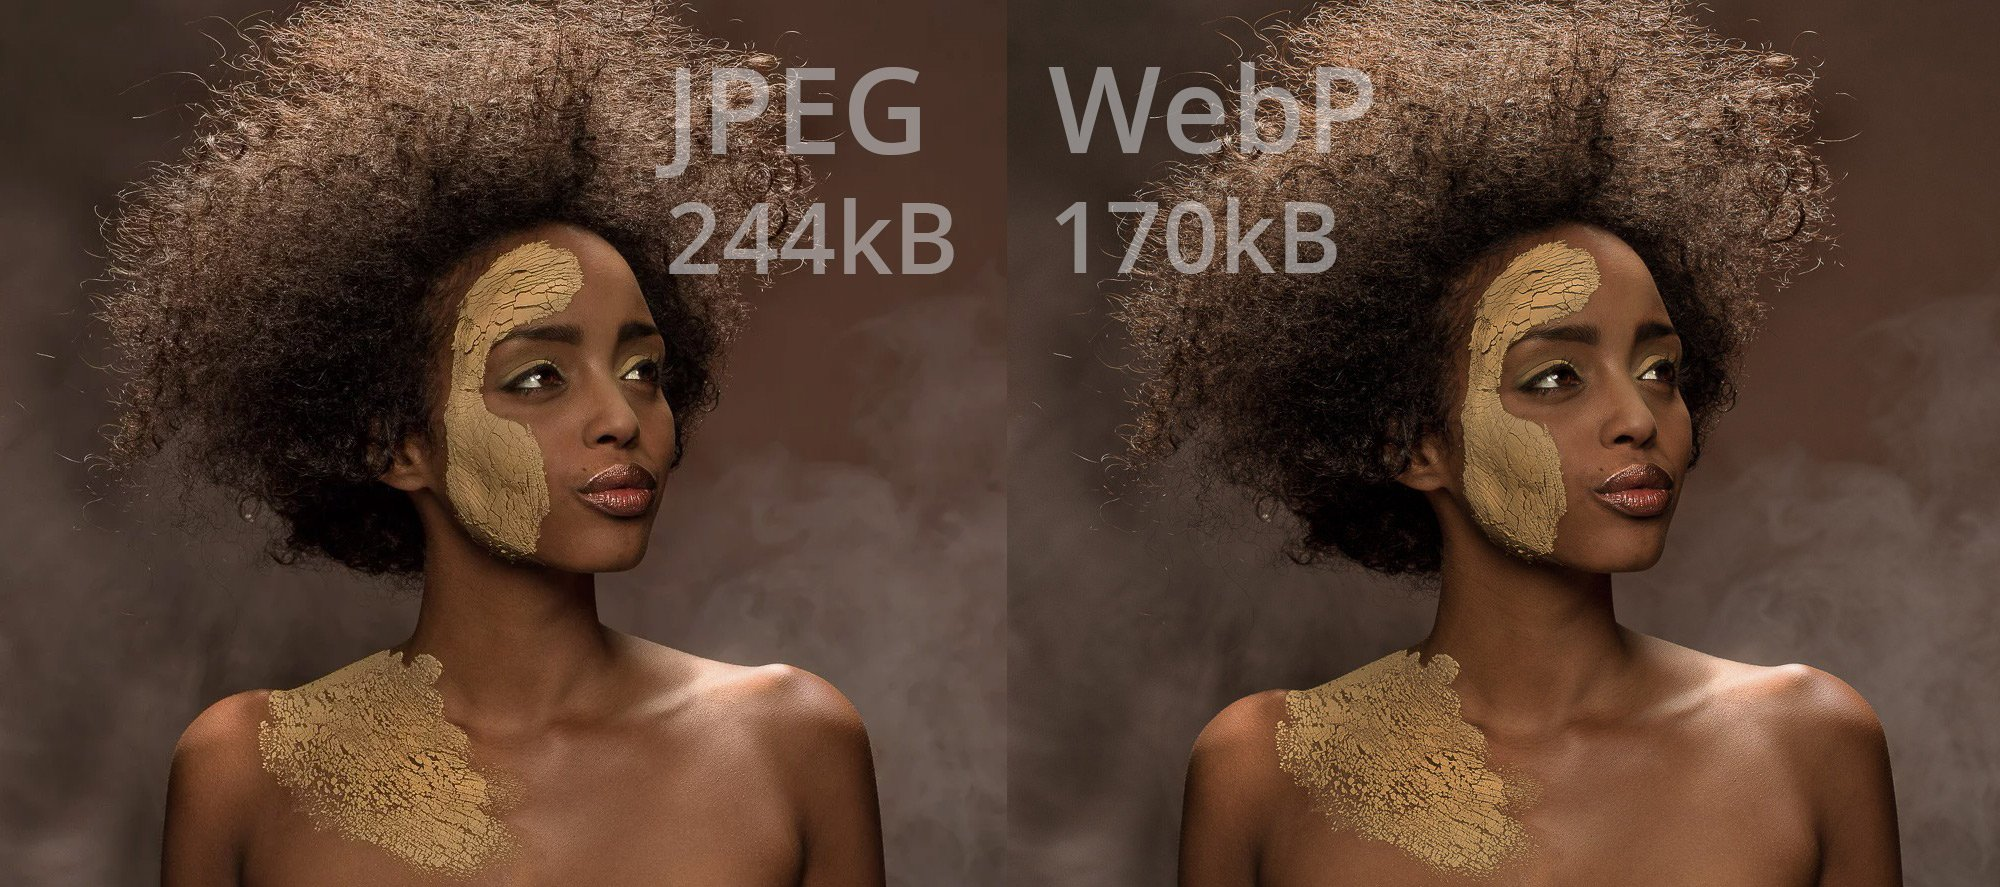 webp vs jpeg